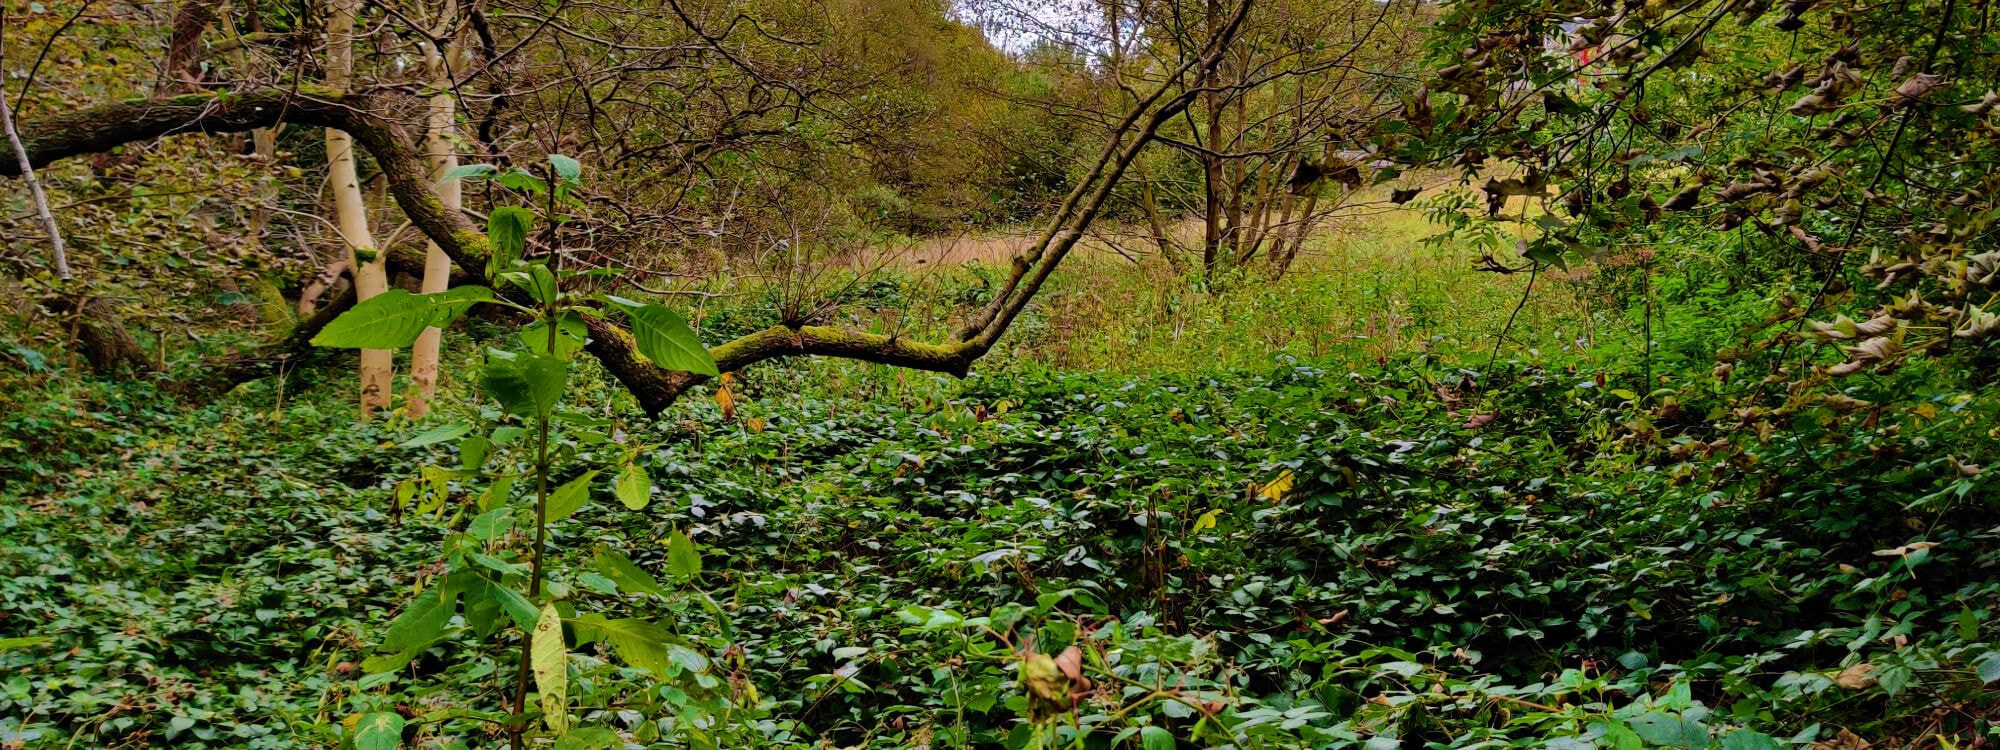 Looking over green undergrowth and between trees in Adel woods during Autumn